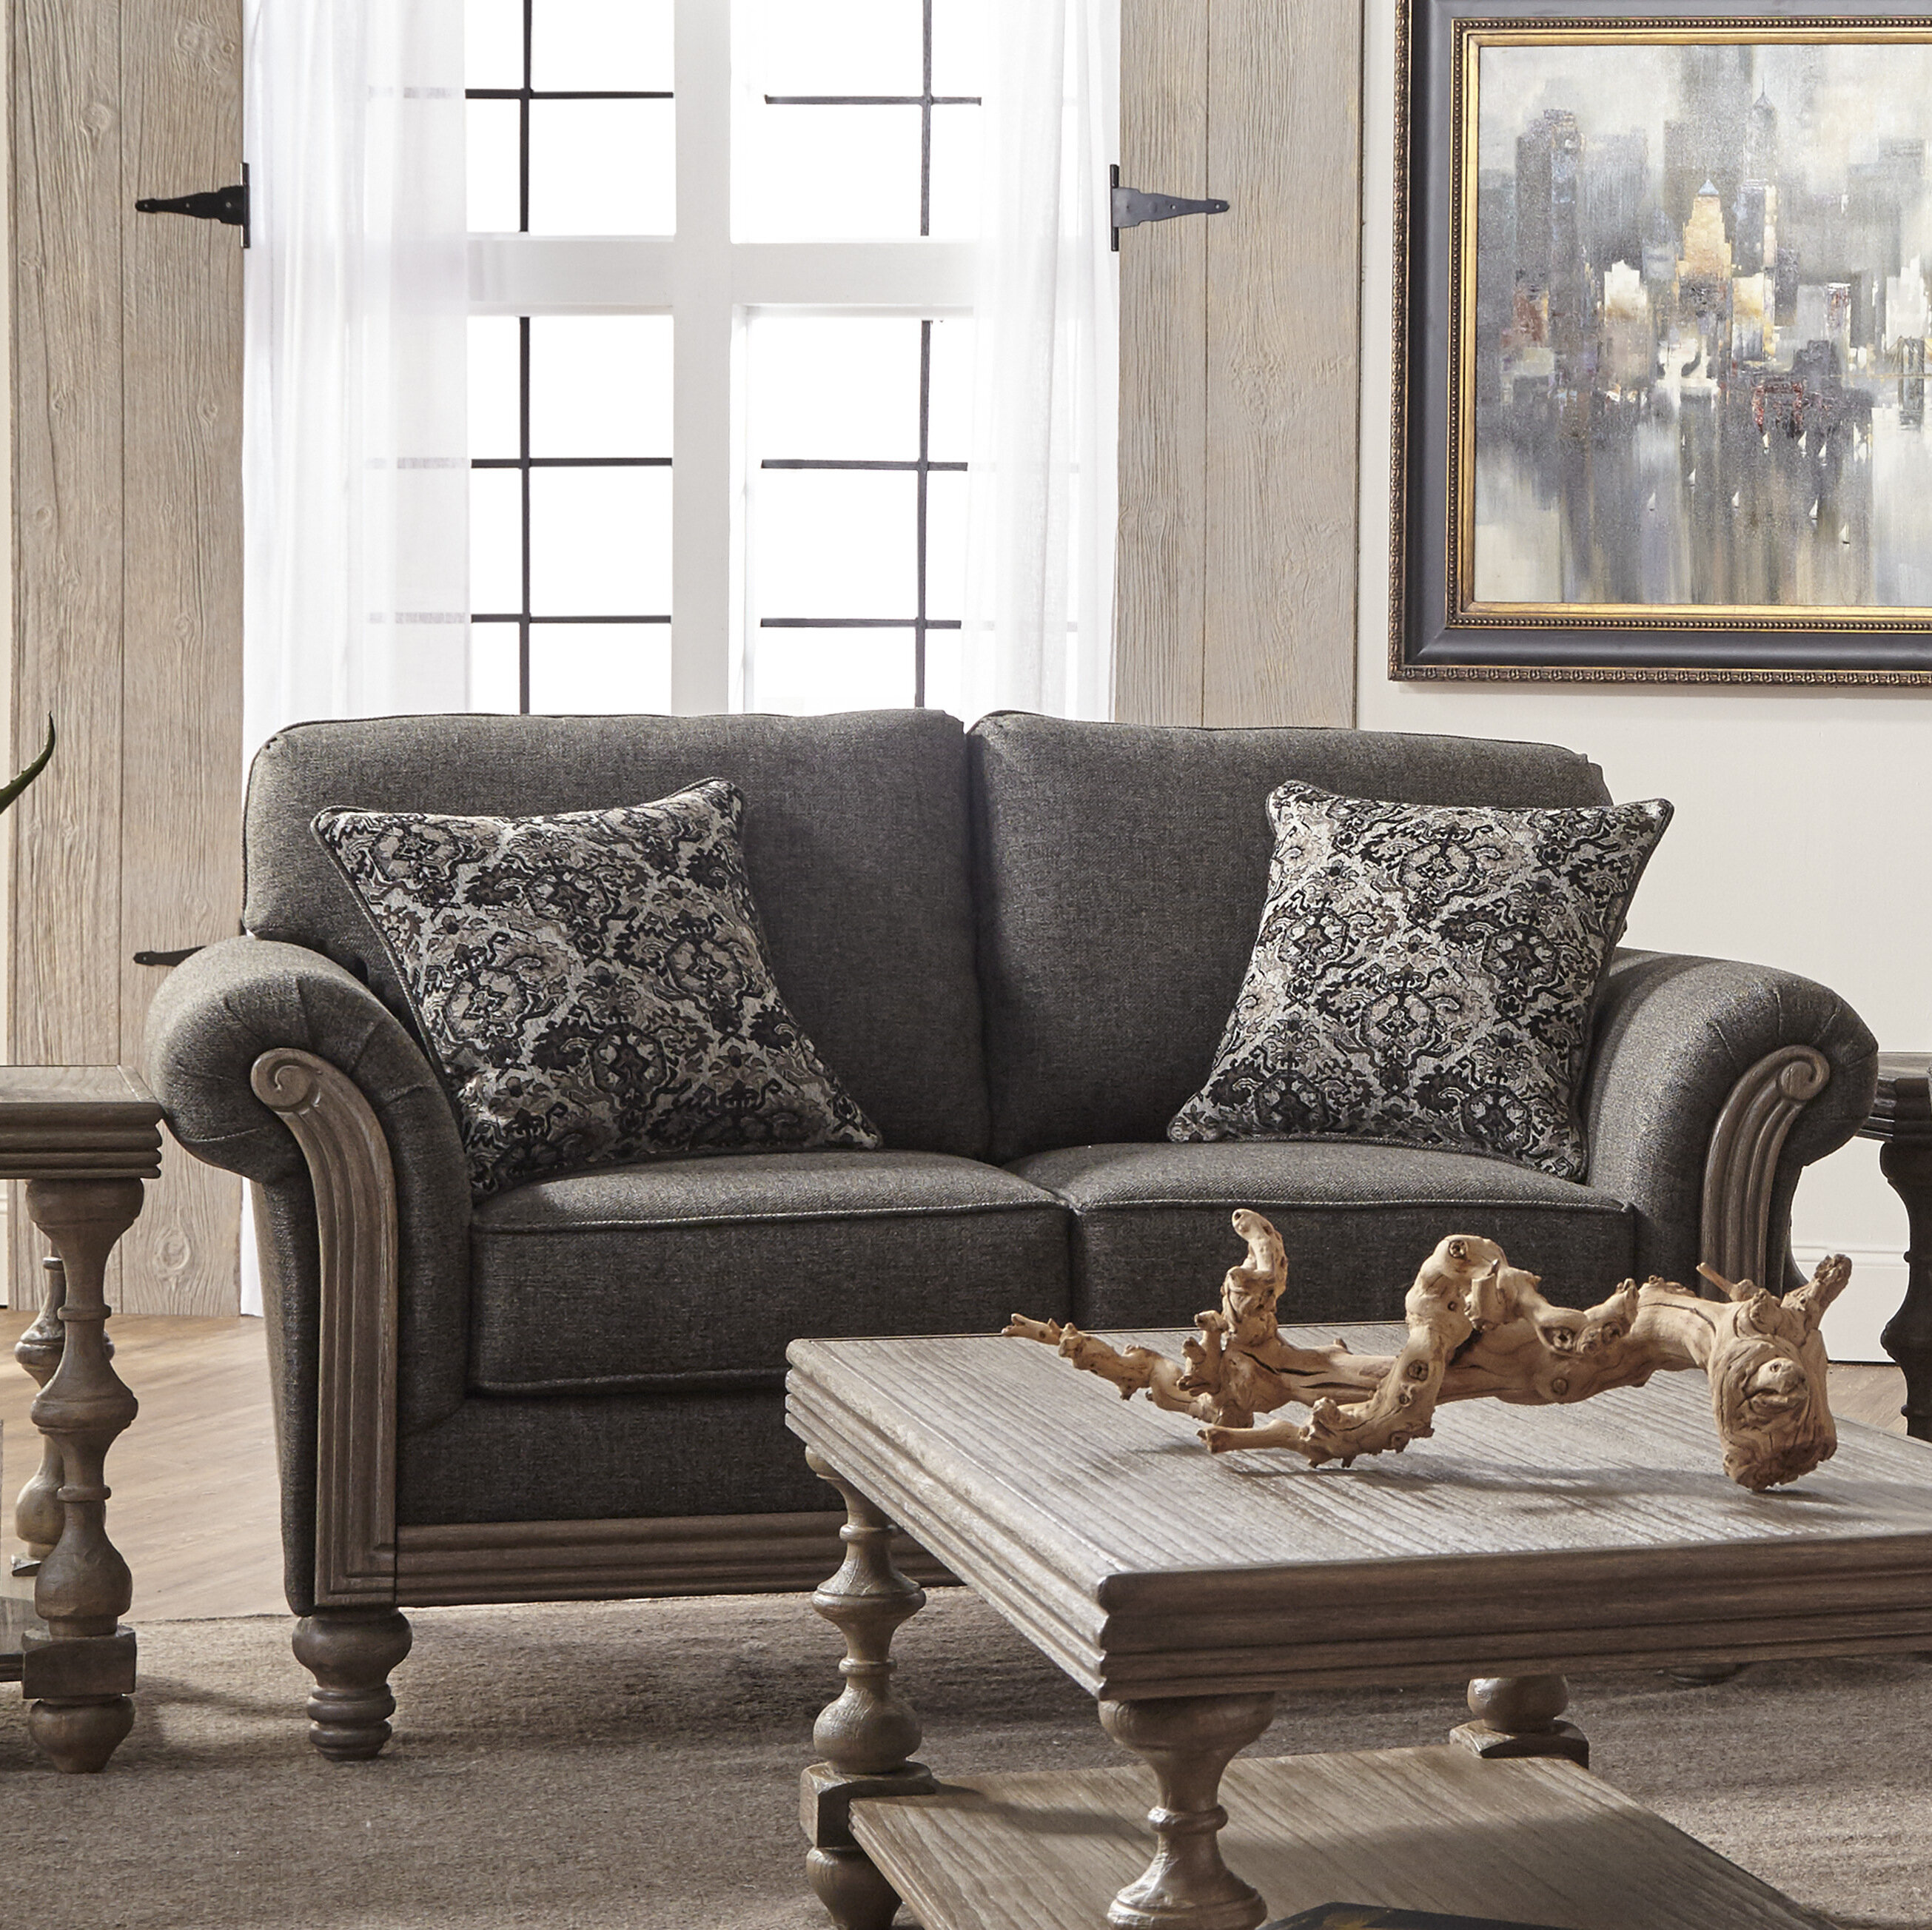 cushion lodge home loveseat lloyd taupe tufted product kathy wood frame detail kuo sofa industrial